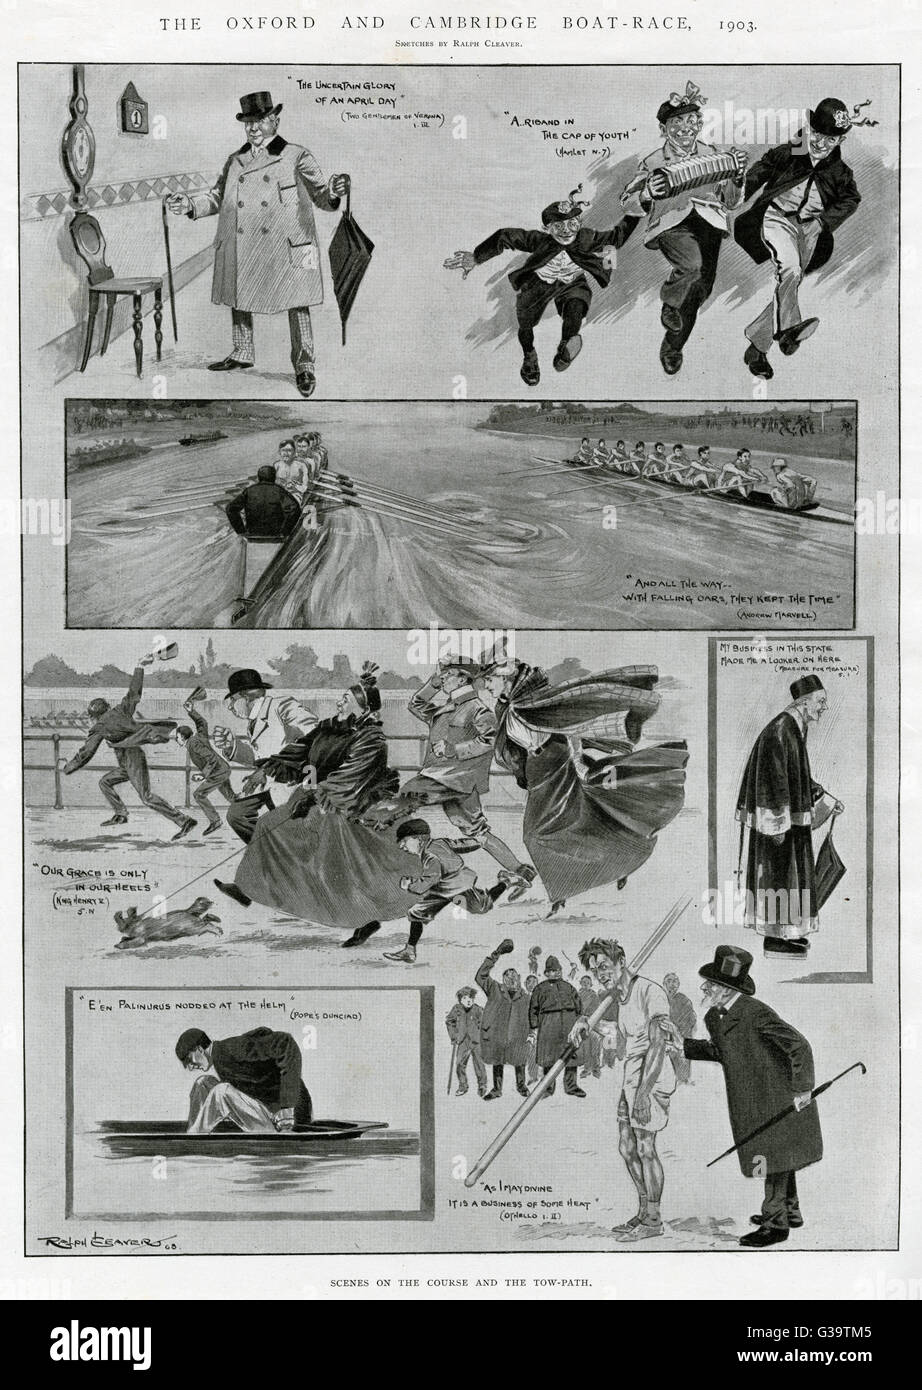 Scenes at the boat race:  competitors and spectators.        Date: 1903 - Stock Image